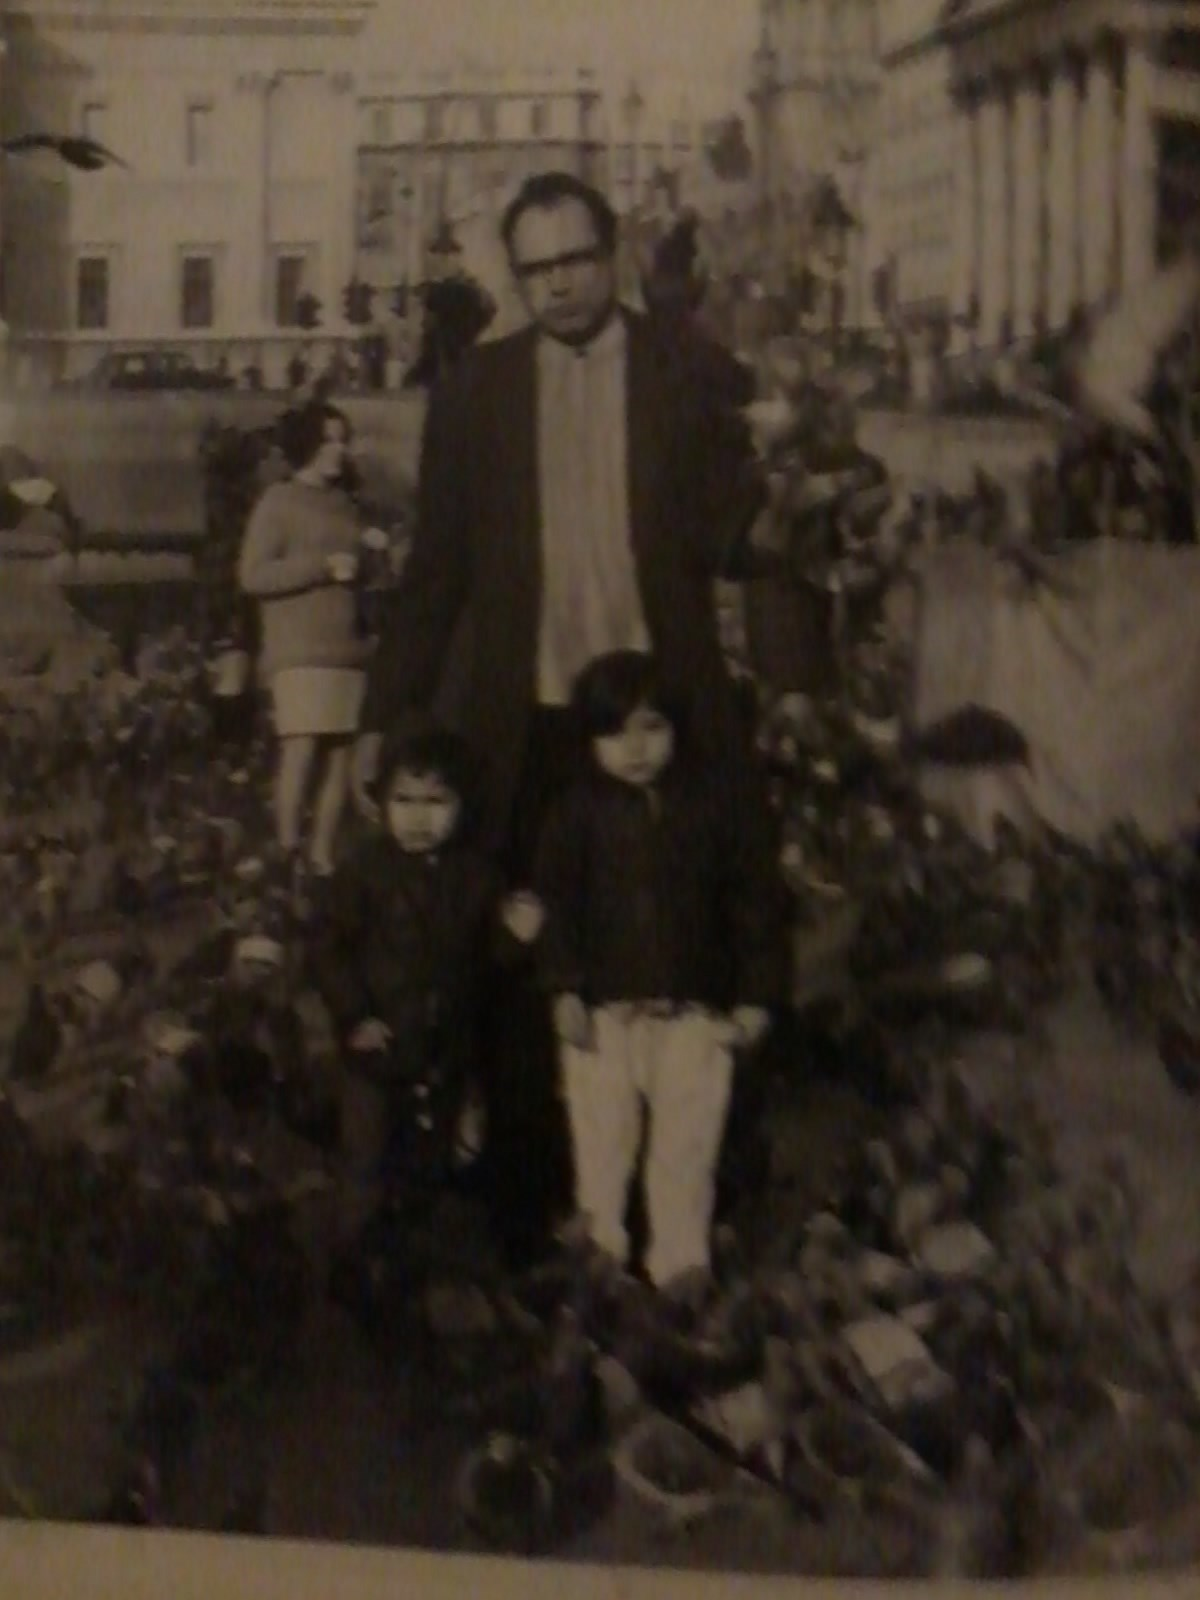 My Dad, sister and brother in Trafalgar square London 1969